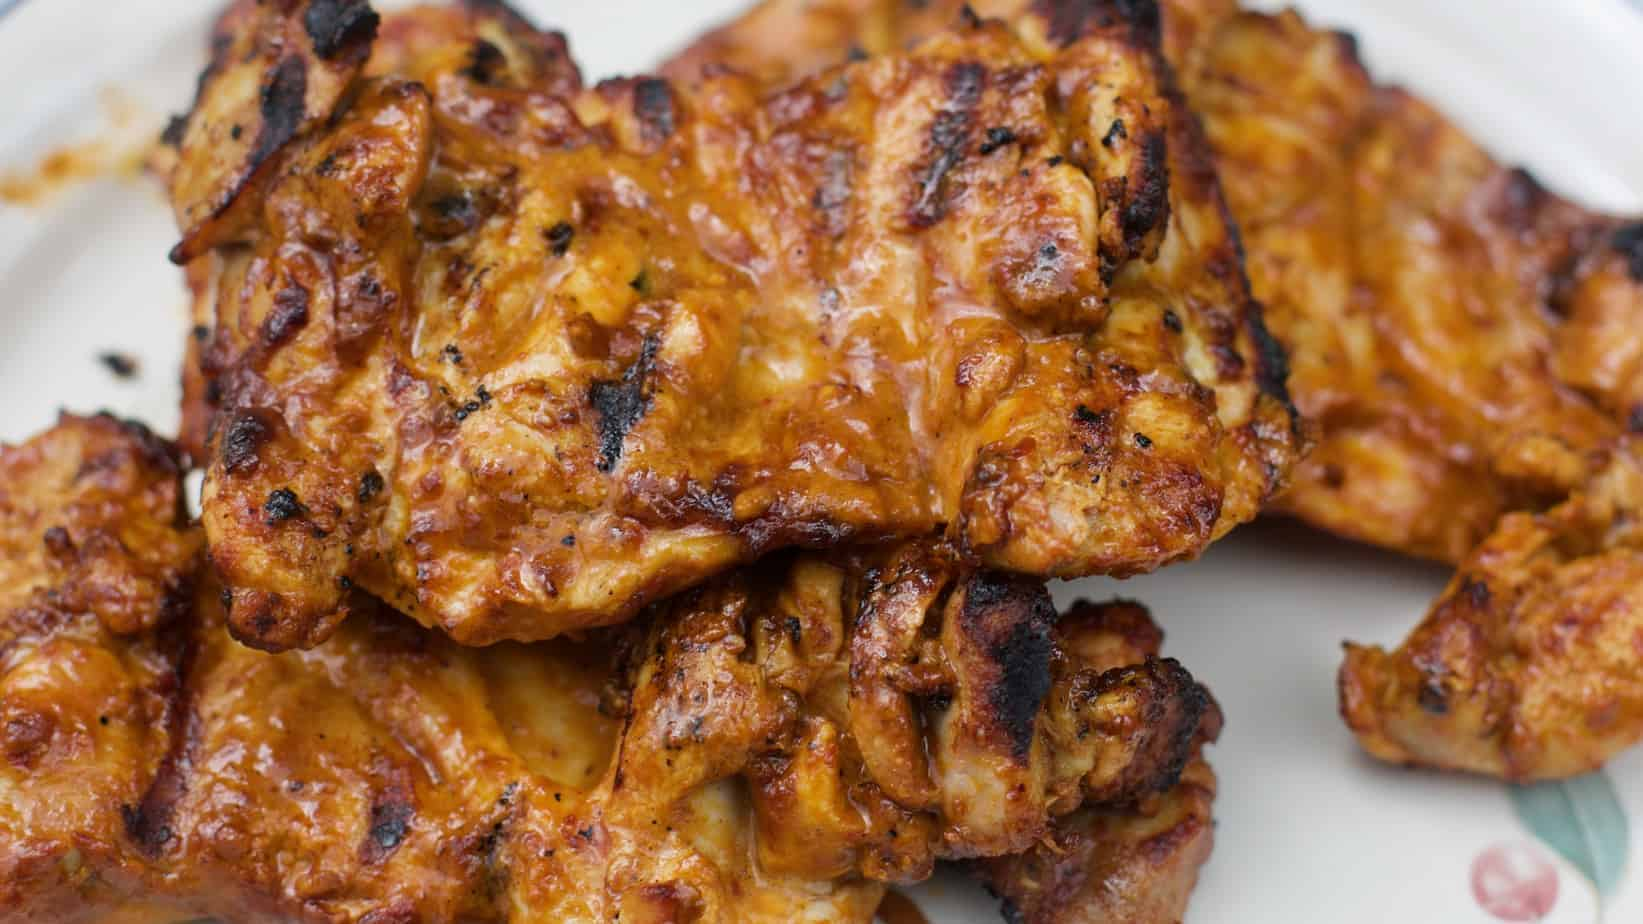 Keto Chipotle Grilled Chicken